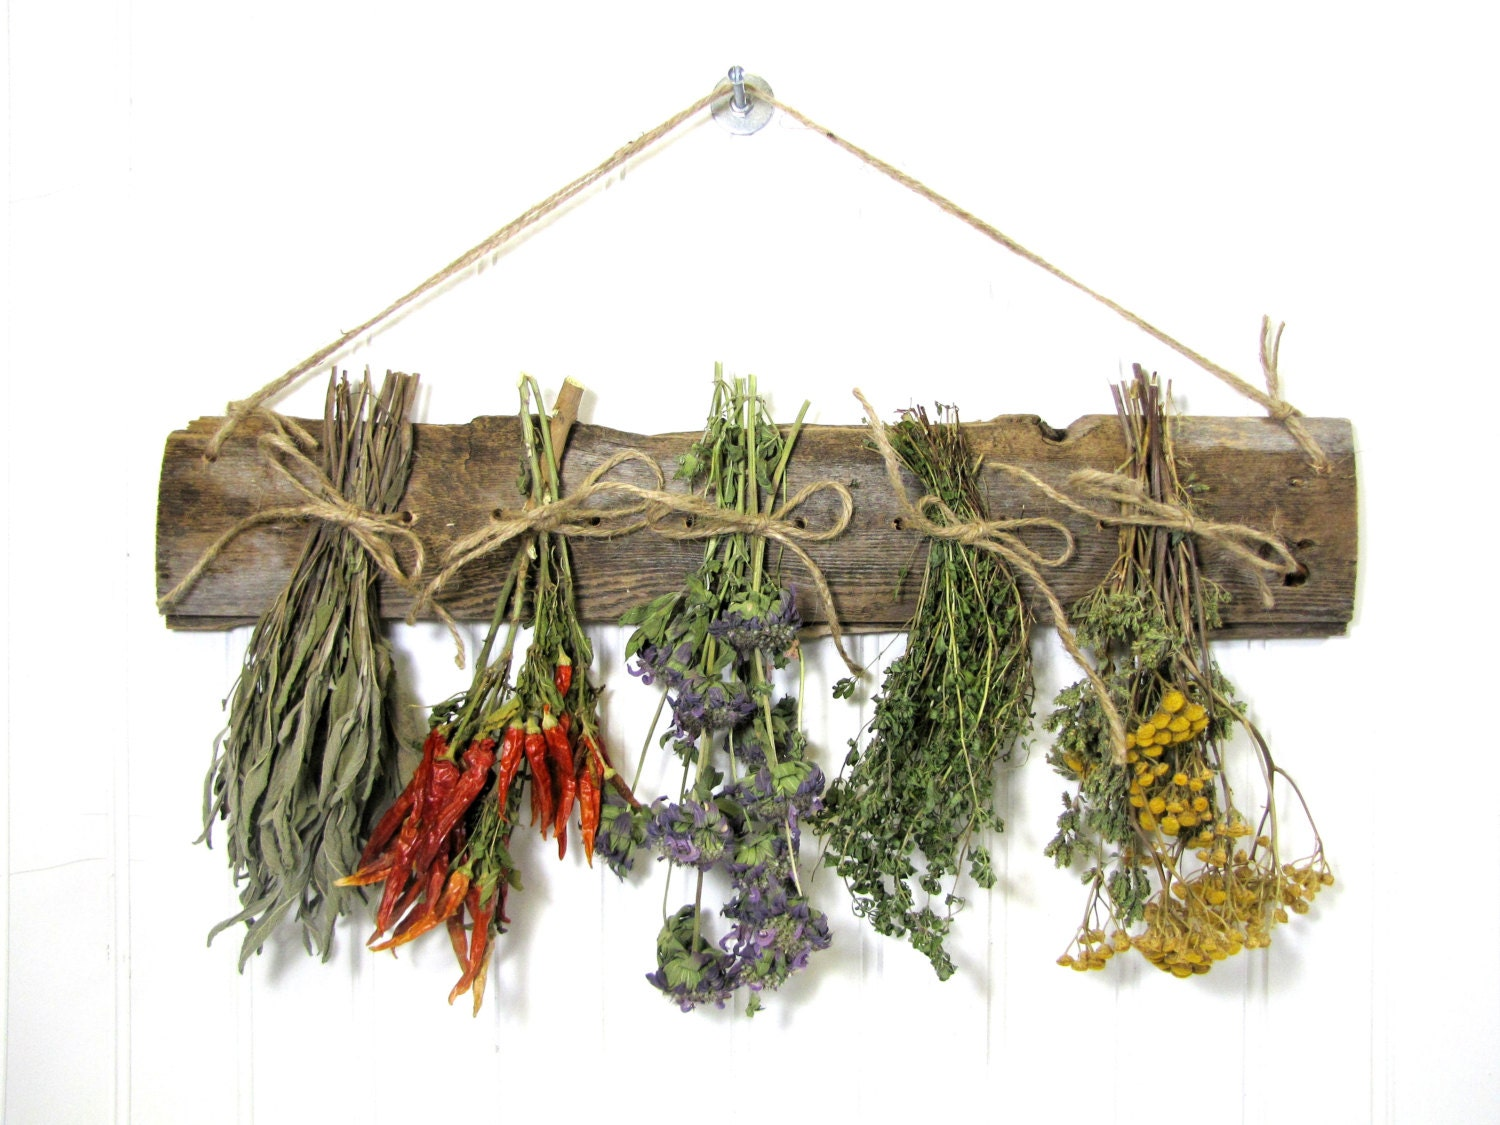 Https Etsy Com Listing 128144146 Dried Herb Rack Dried Floral Arrangement